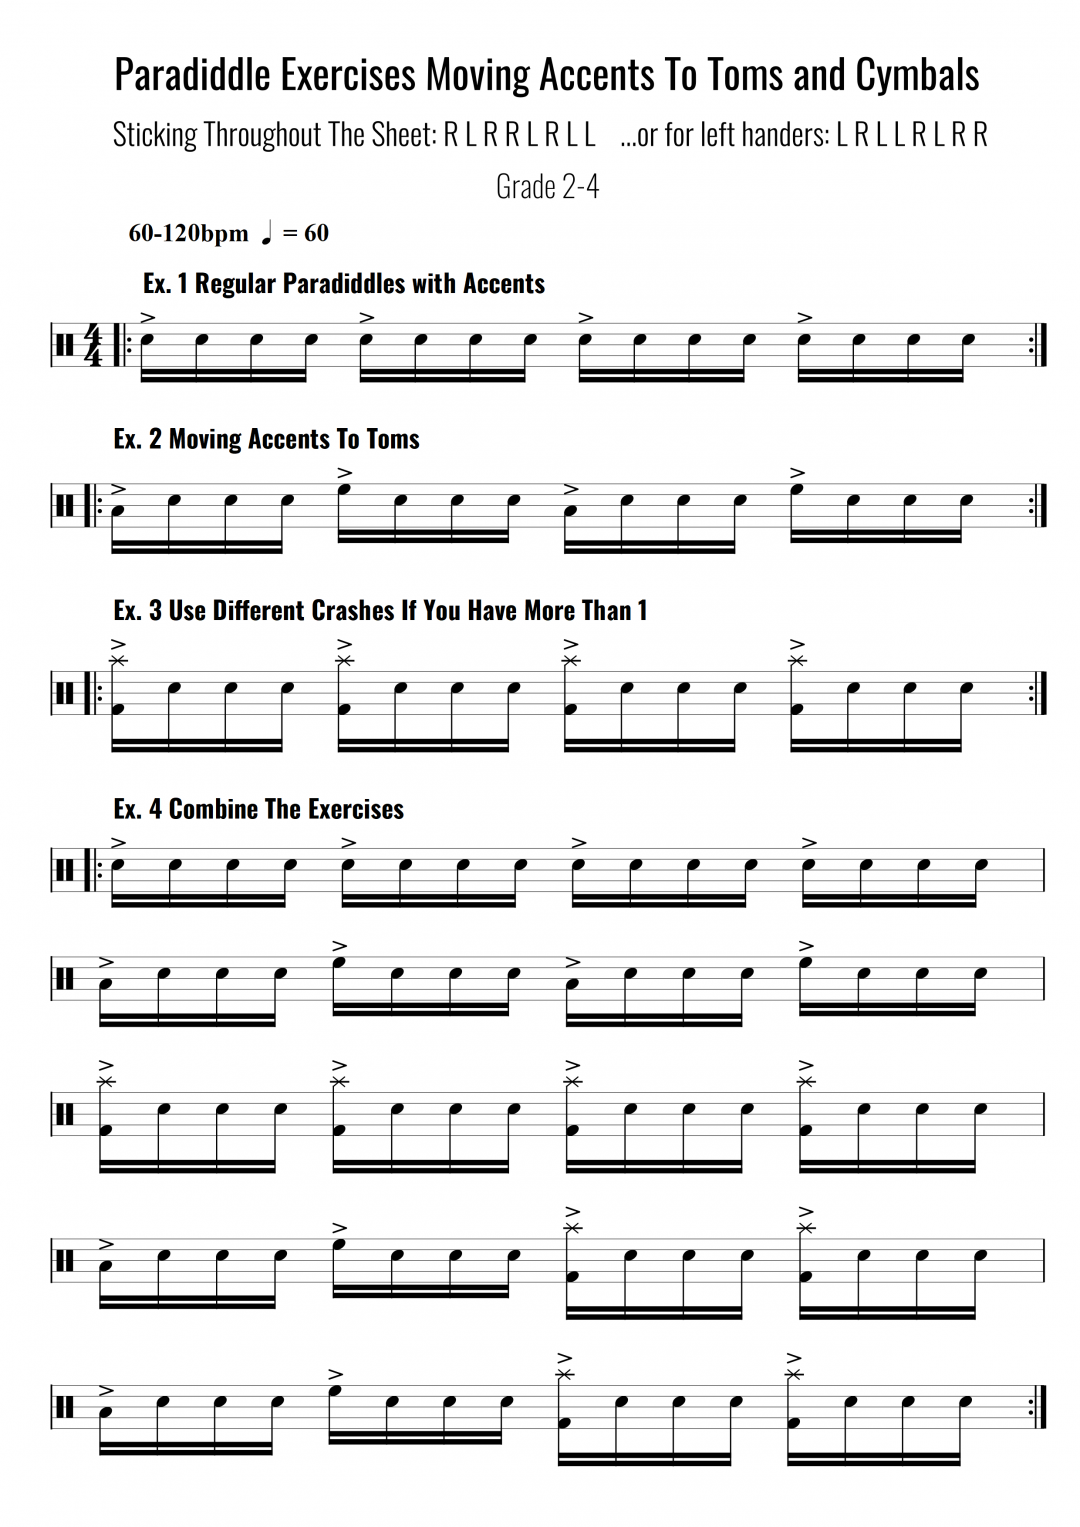 Paradiddle Exercises Moving Accents To Toms and Cymbals